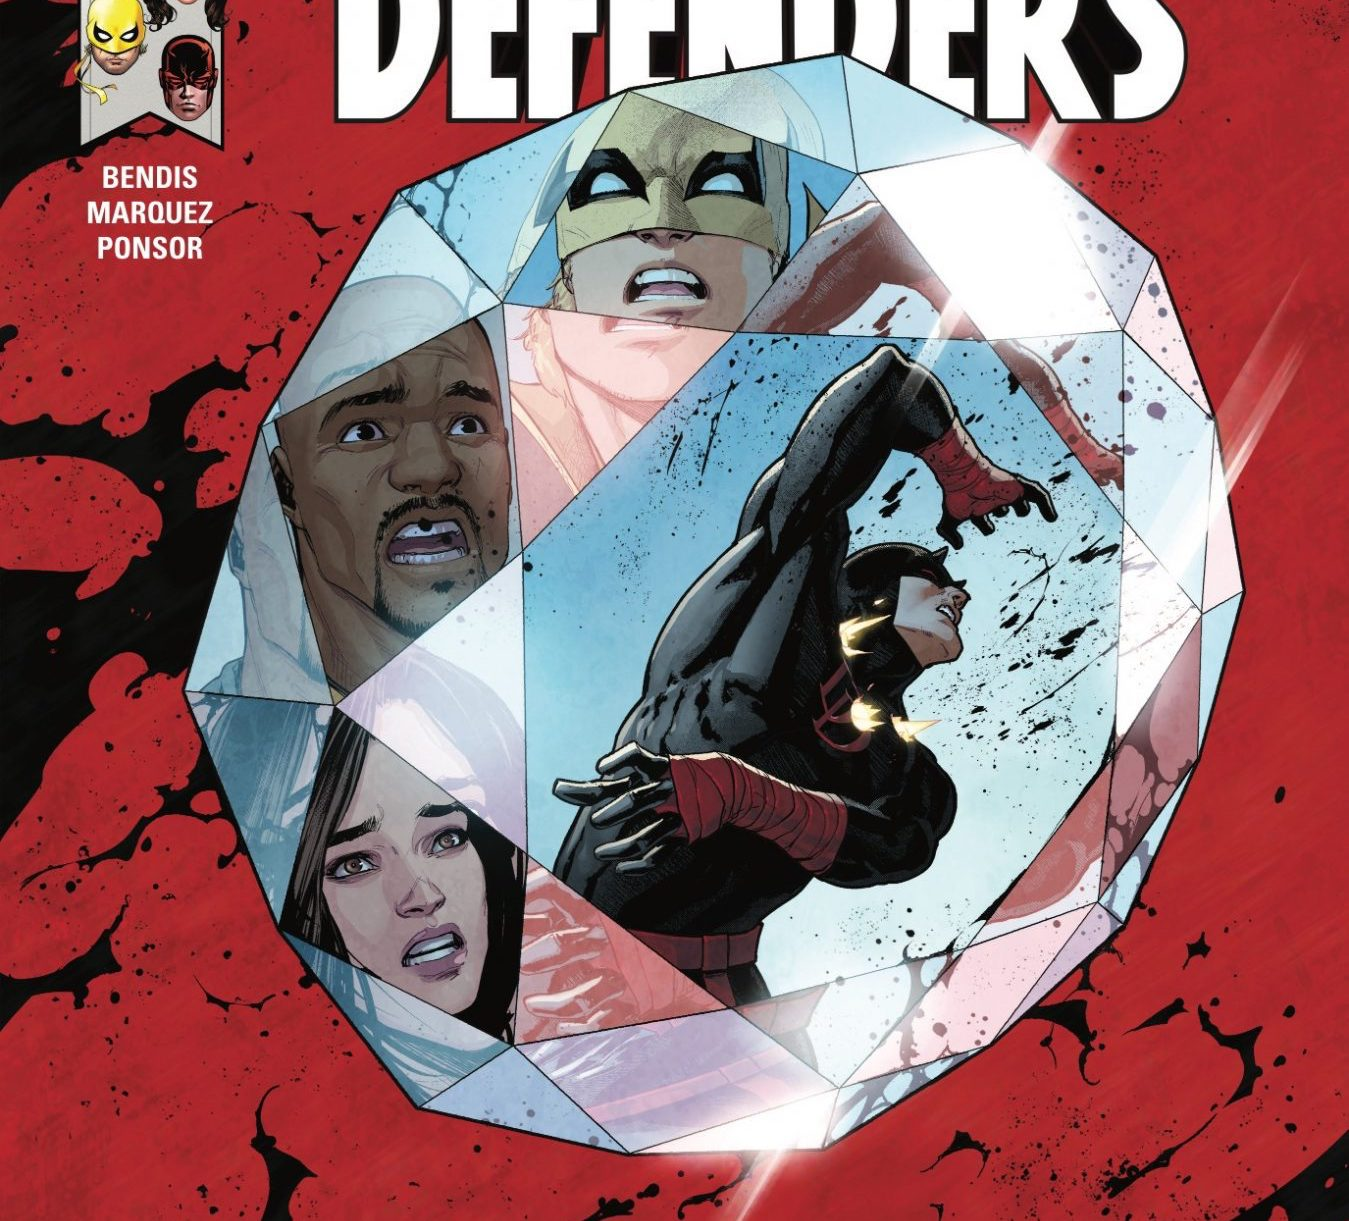 The Defenders #7 Review